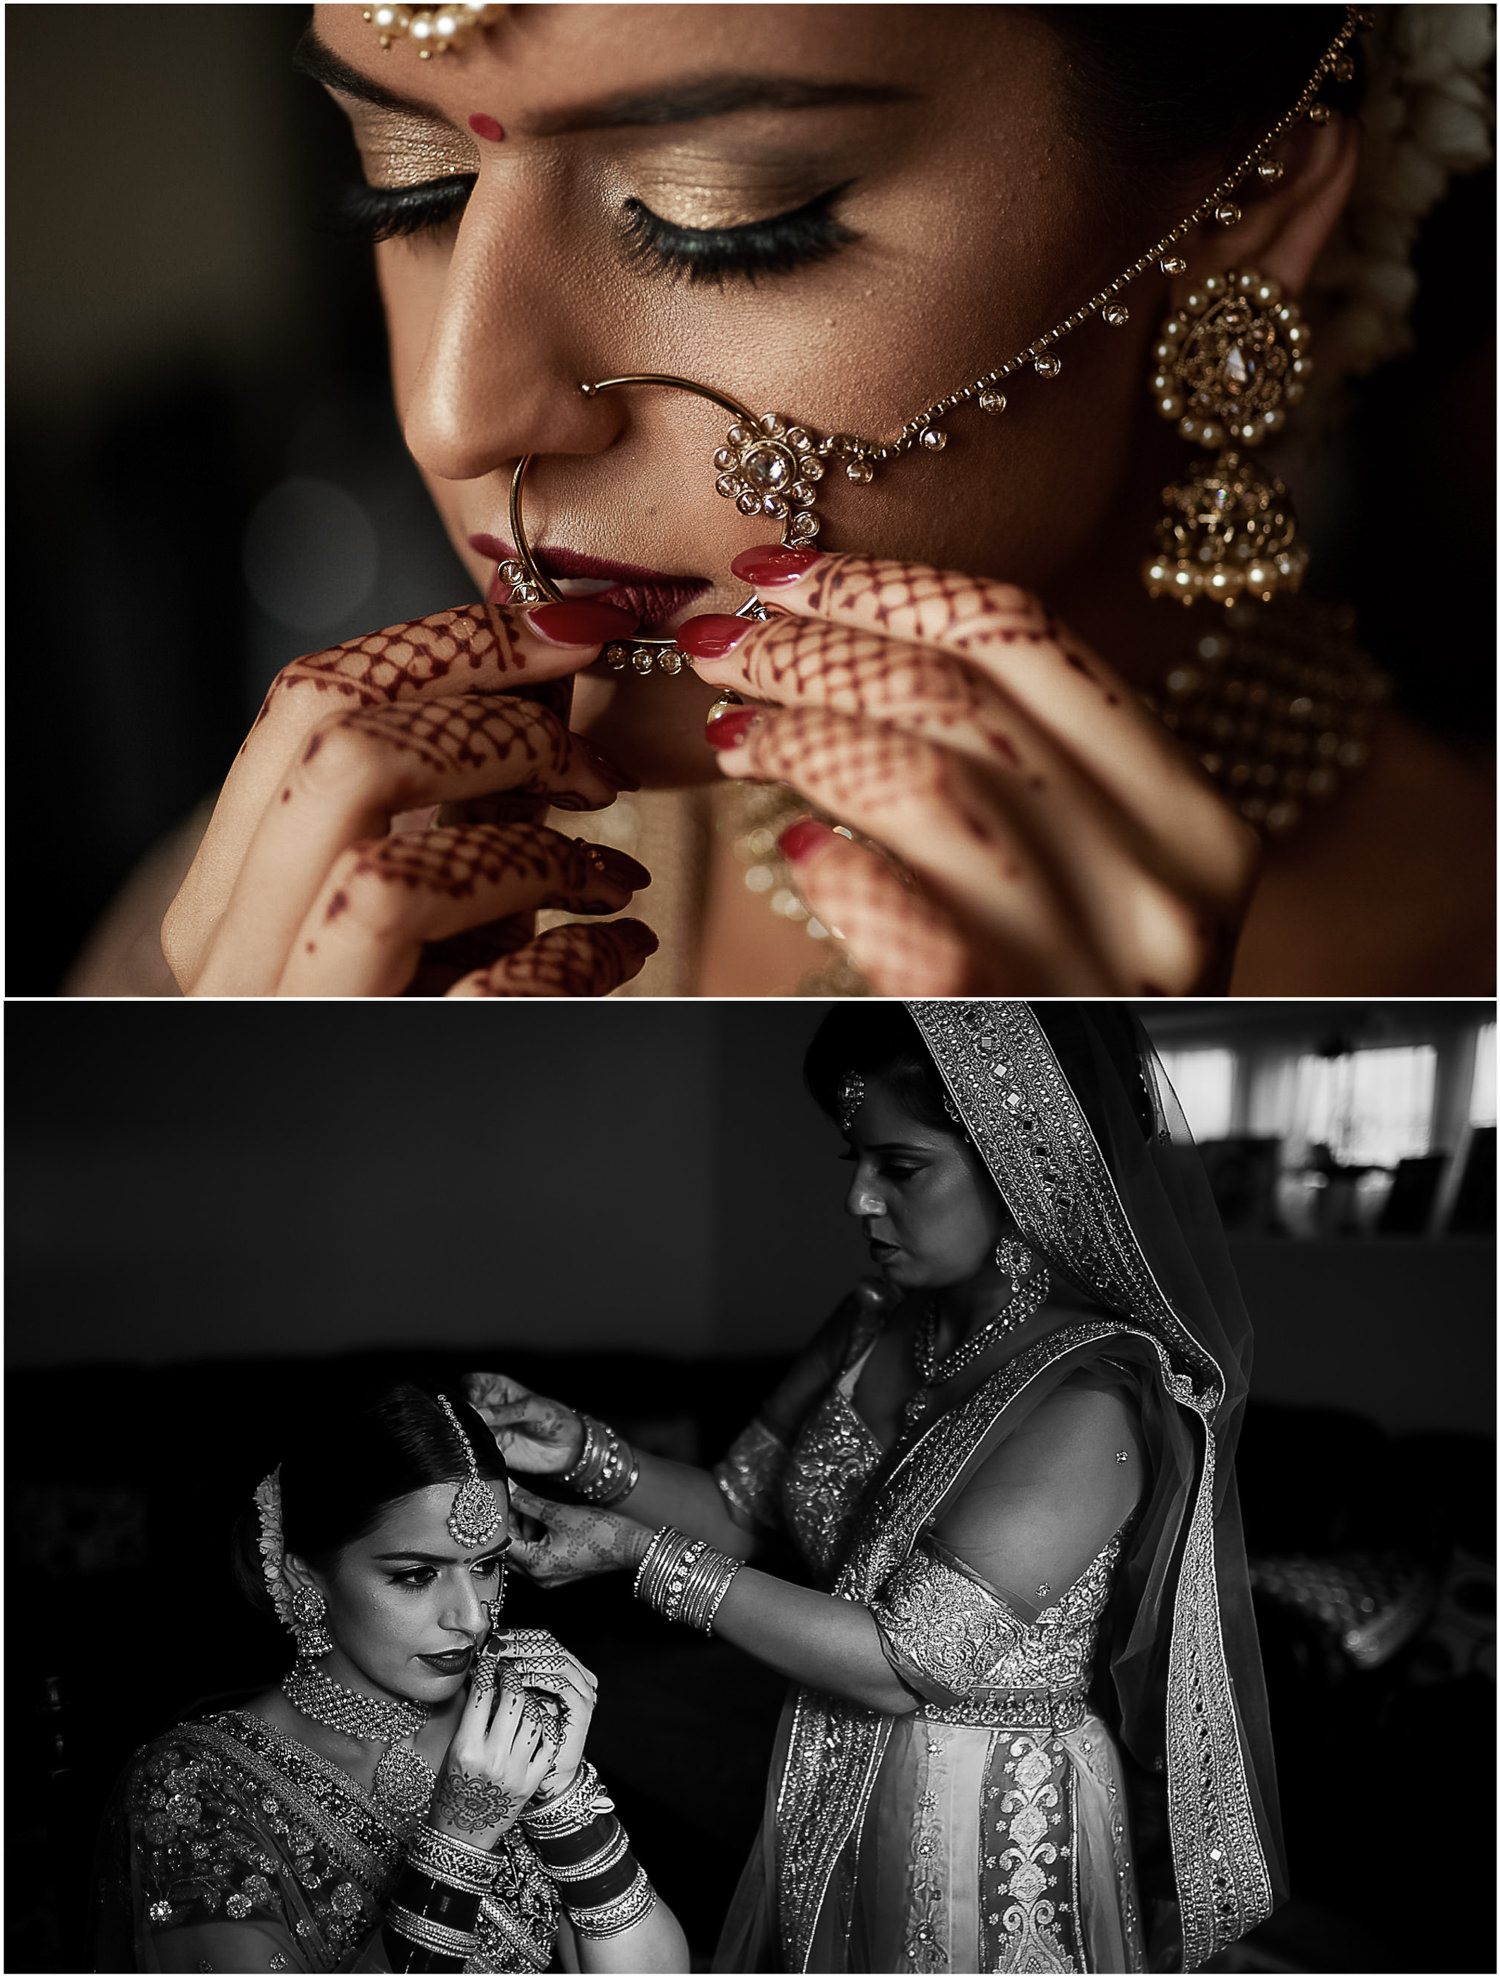 Sikh bride putting on her jewellery